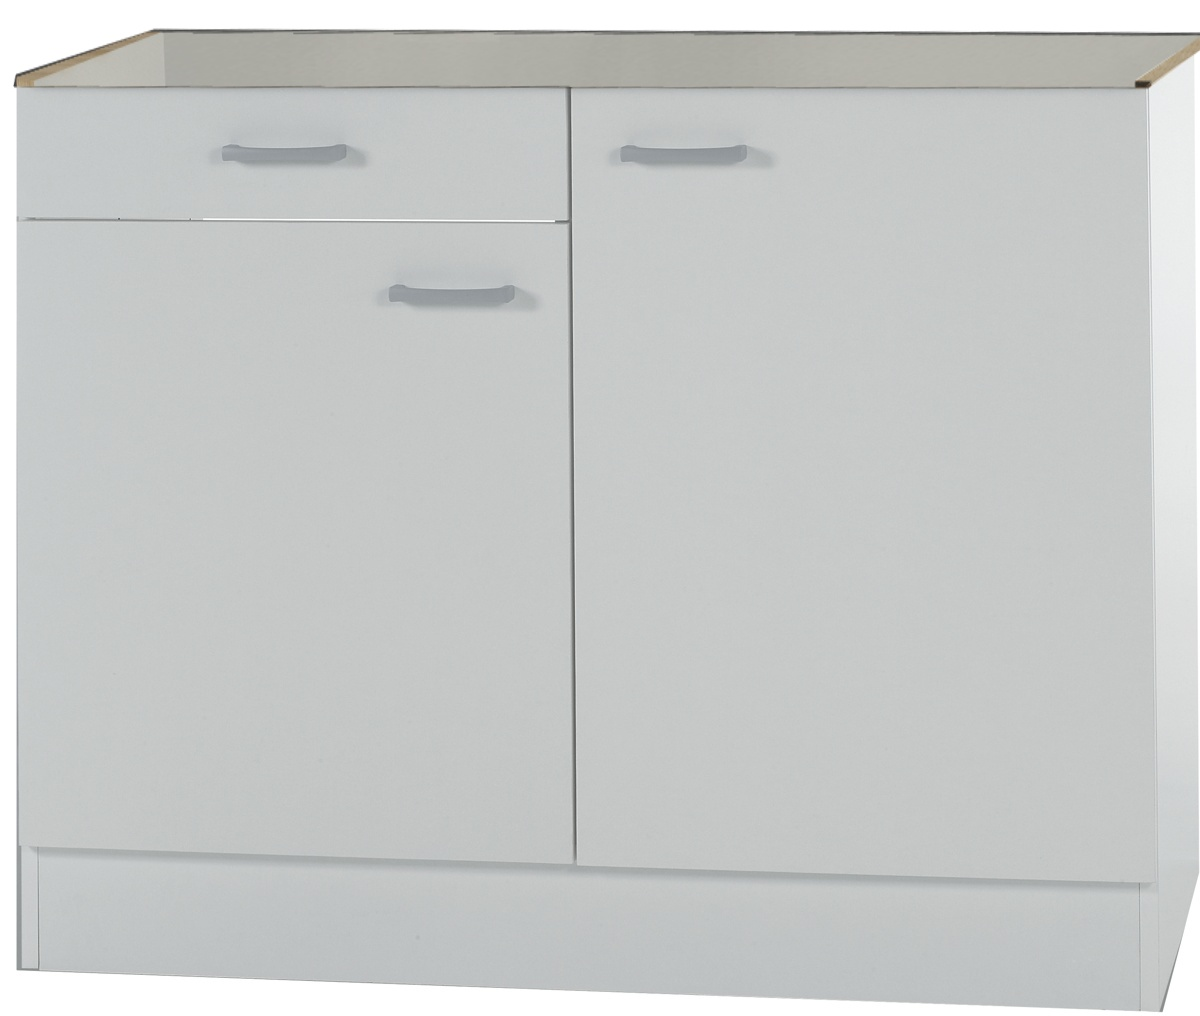 klassik60 sp lenschrank 100cm breit mit schublade wei splso106 ebay. Black Bedroom Furniture Sets. Home Design Ideas